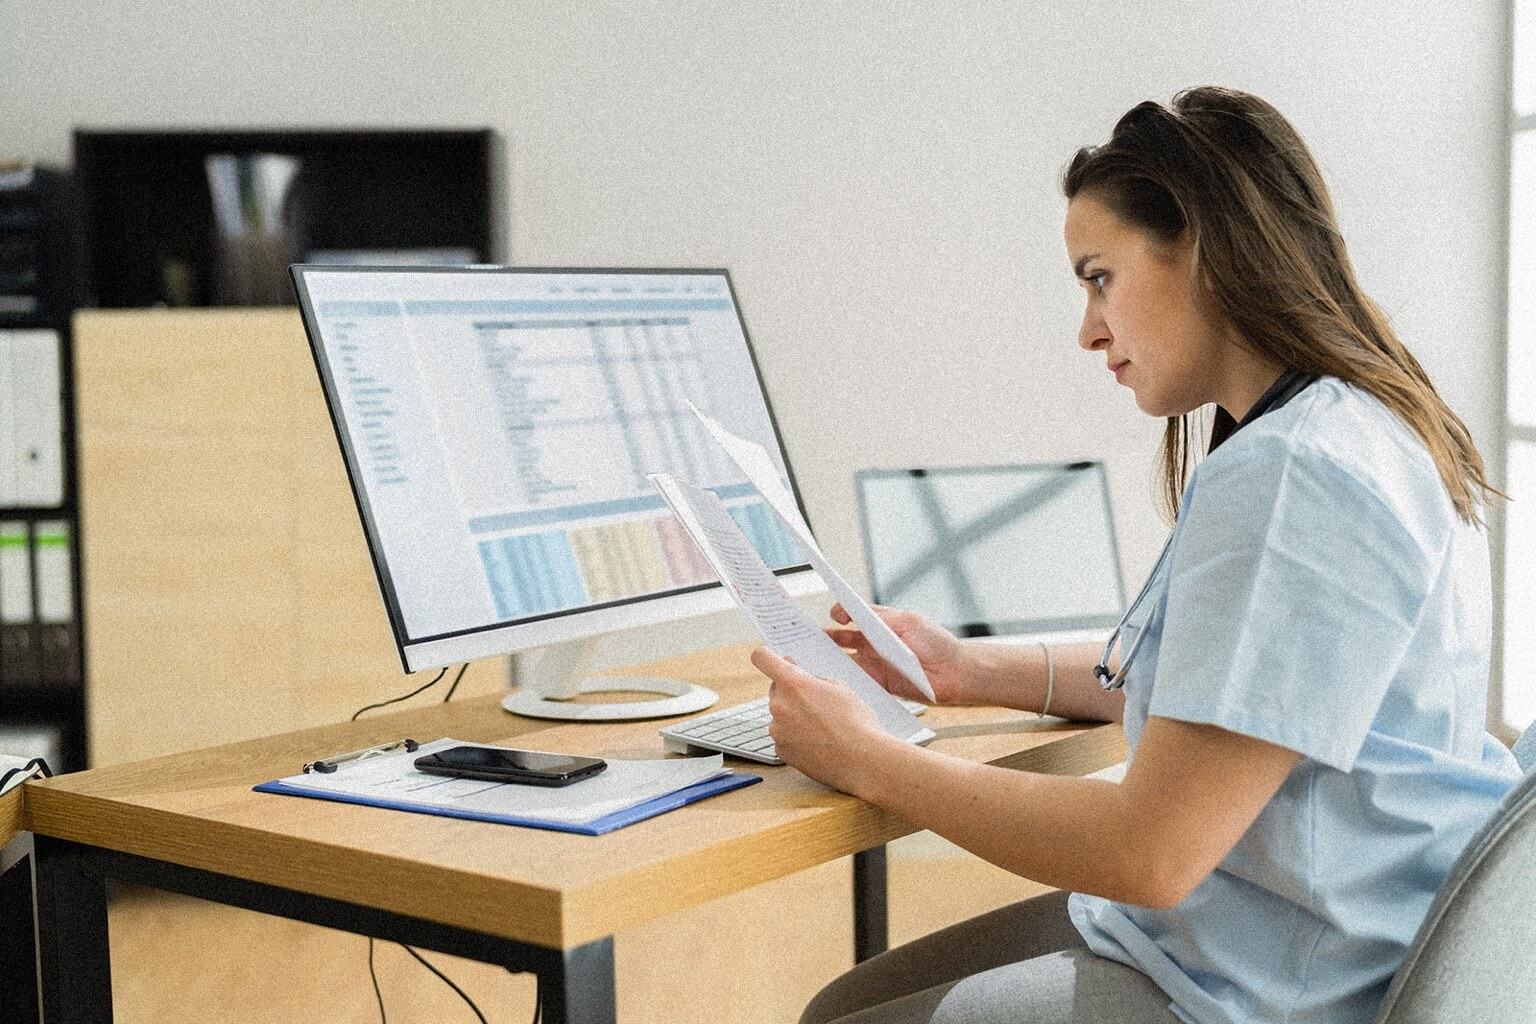 A certified medical coder sits a desk in front of a computer comparing paperwork.